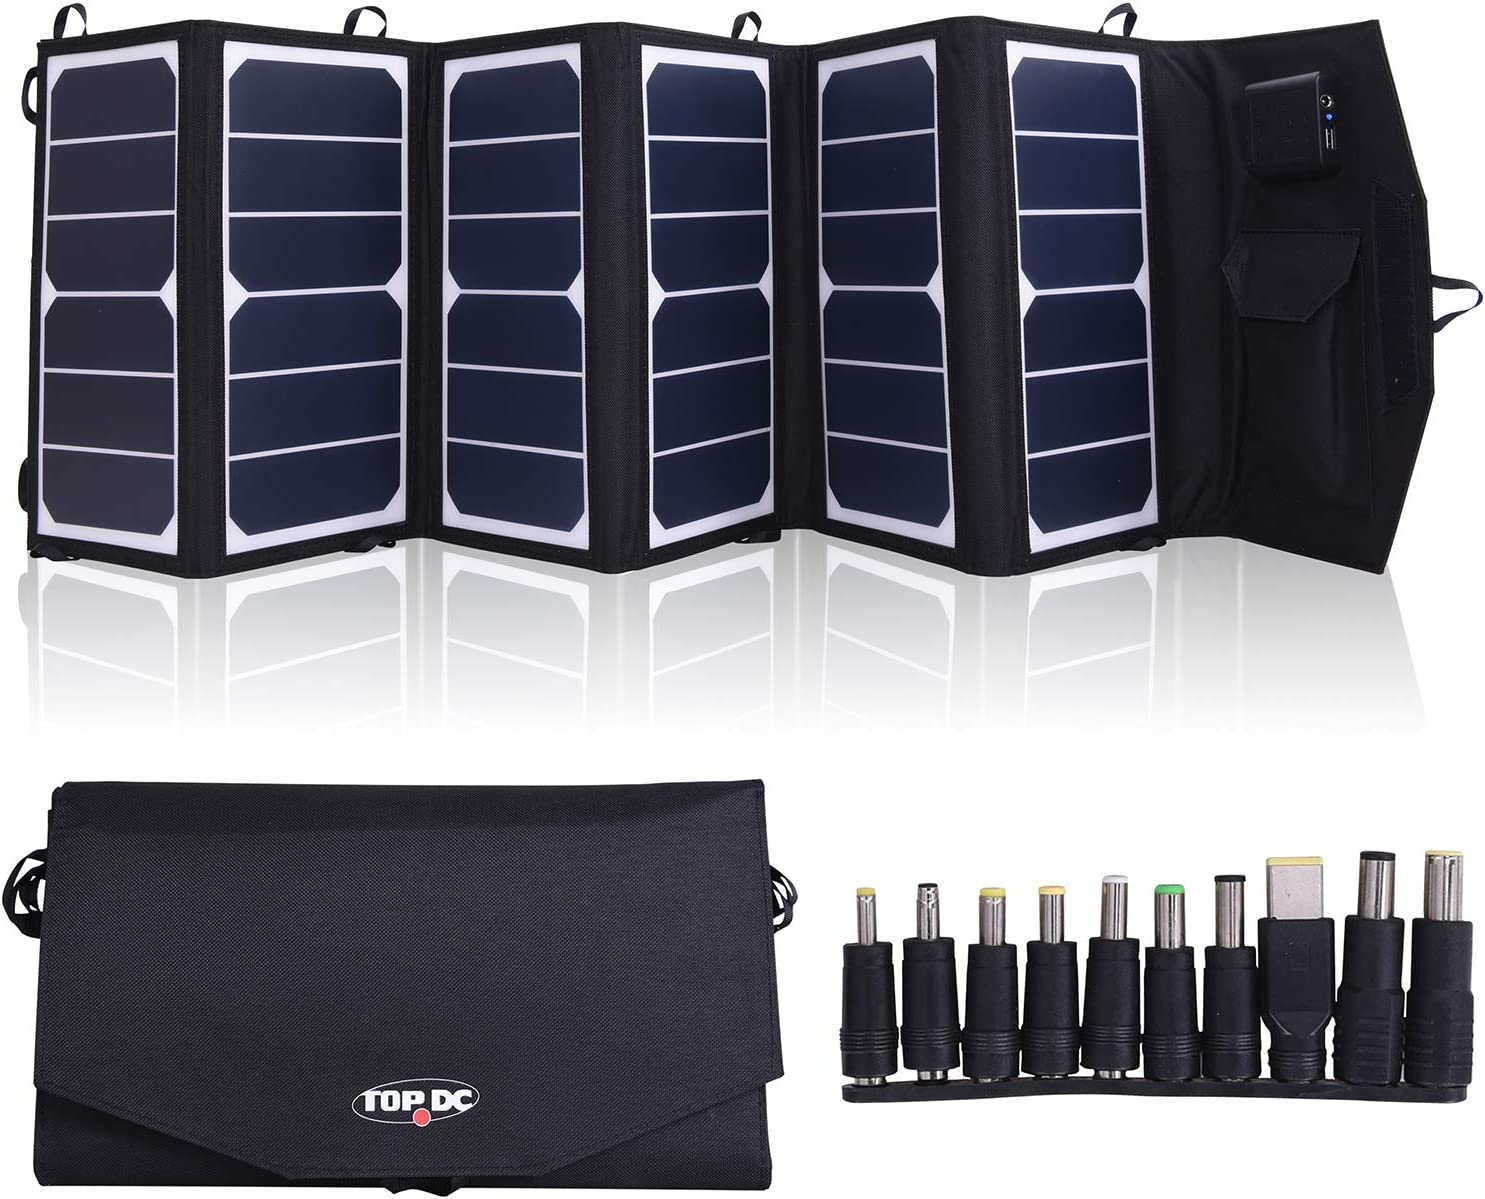 TOPDC 39W High Efficiency 22 Foldable Solar Panel Charger with 5V USB 18V DC Dual Output Camping Travel Charger for Laptop Tablet GPS iPhone iPad Android Camera Other 5-18V Device